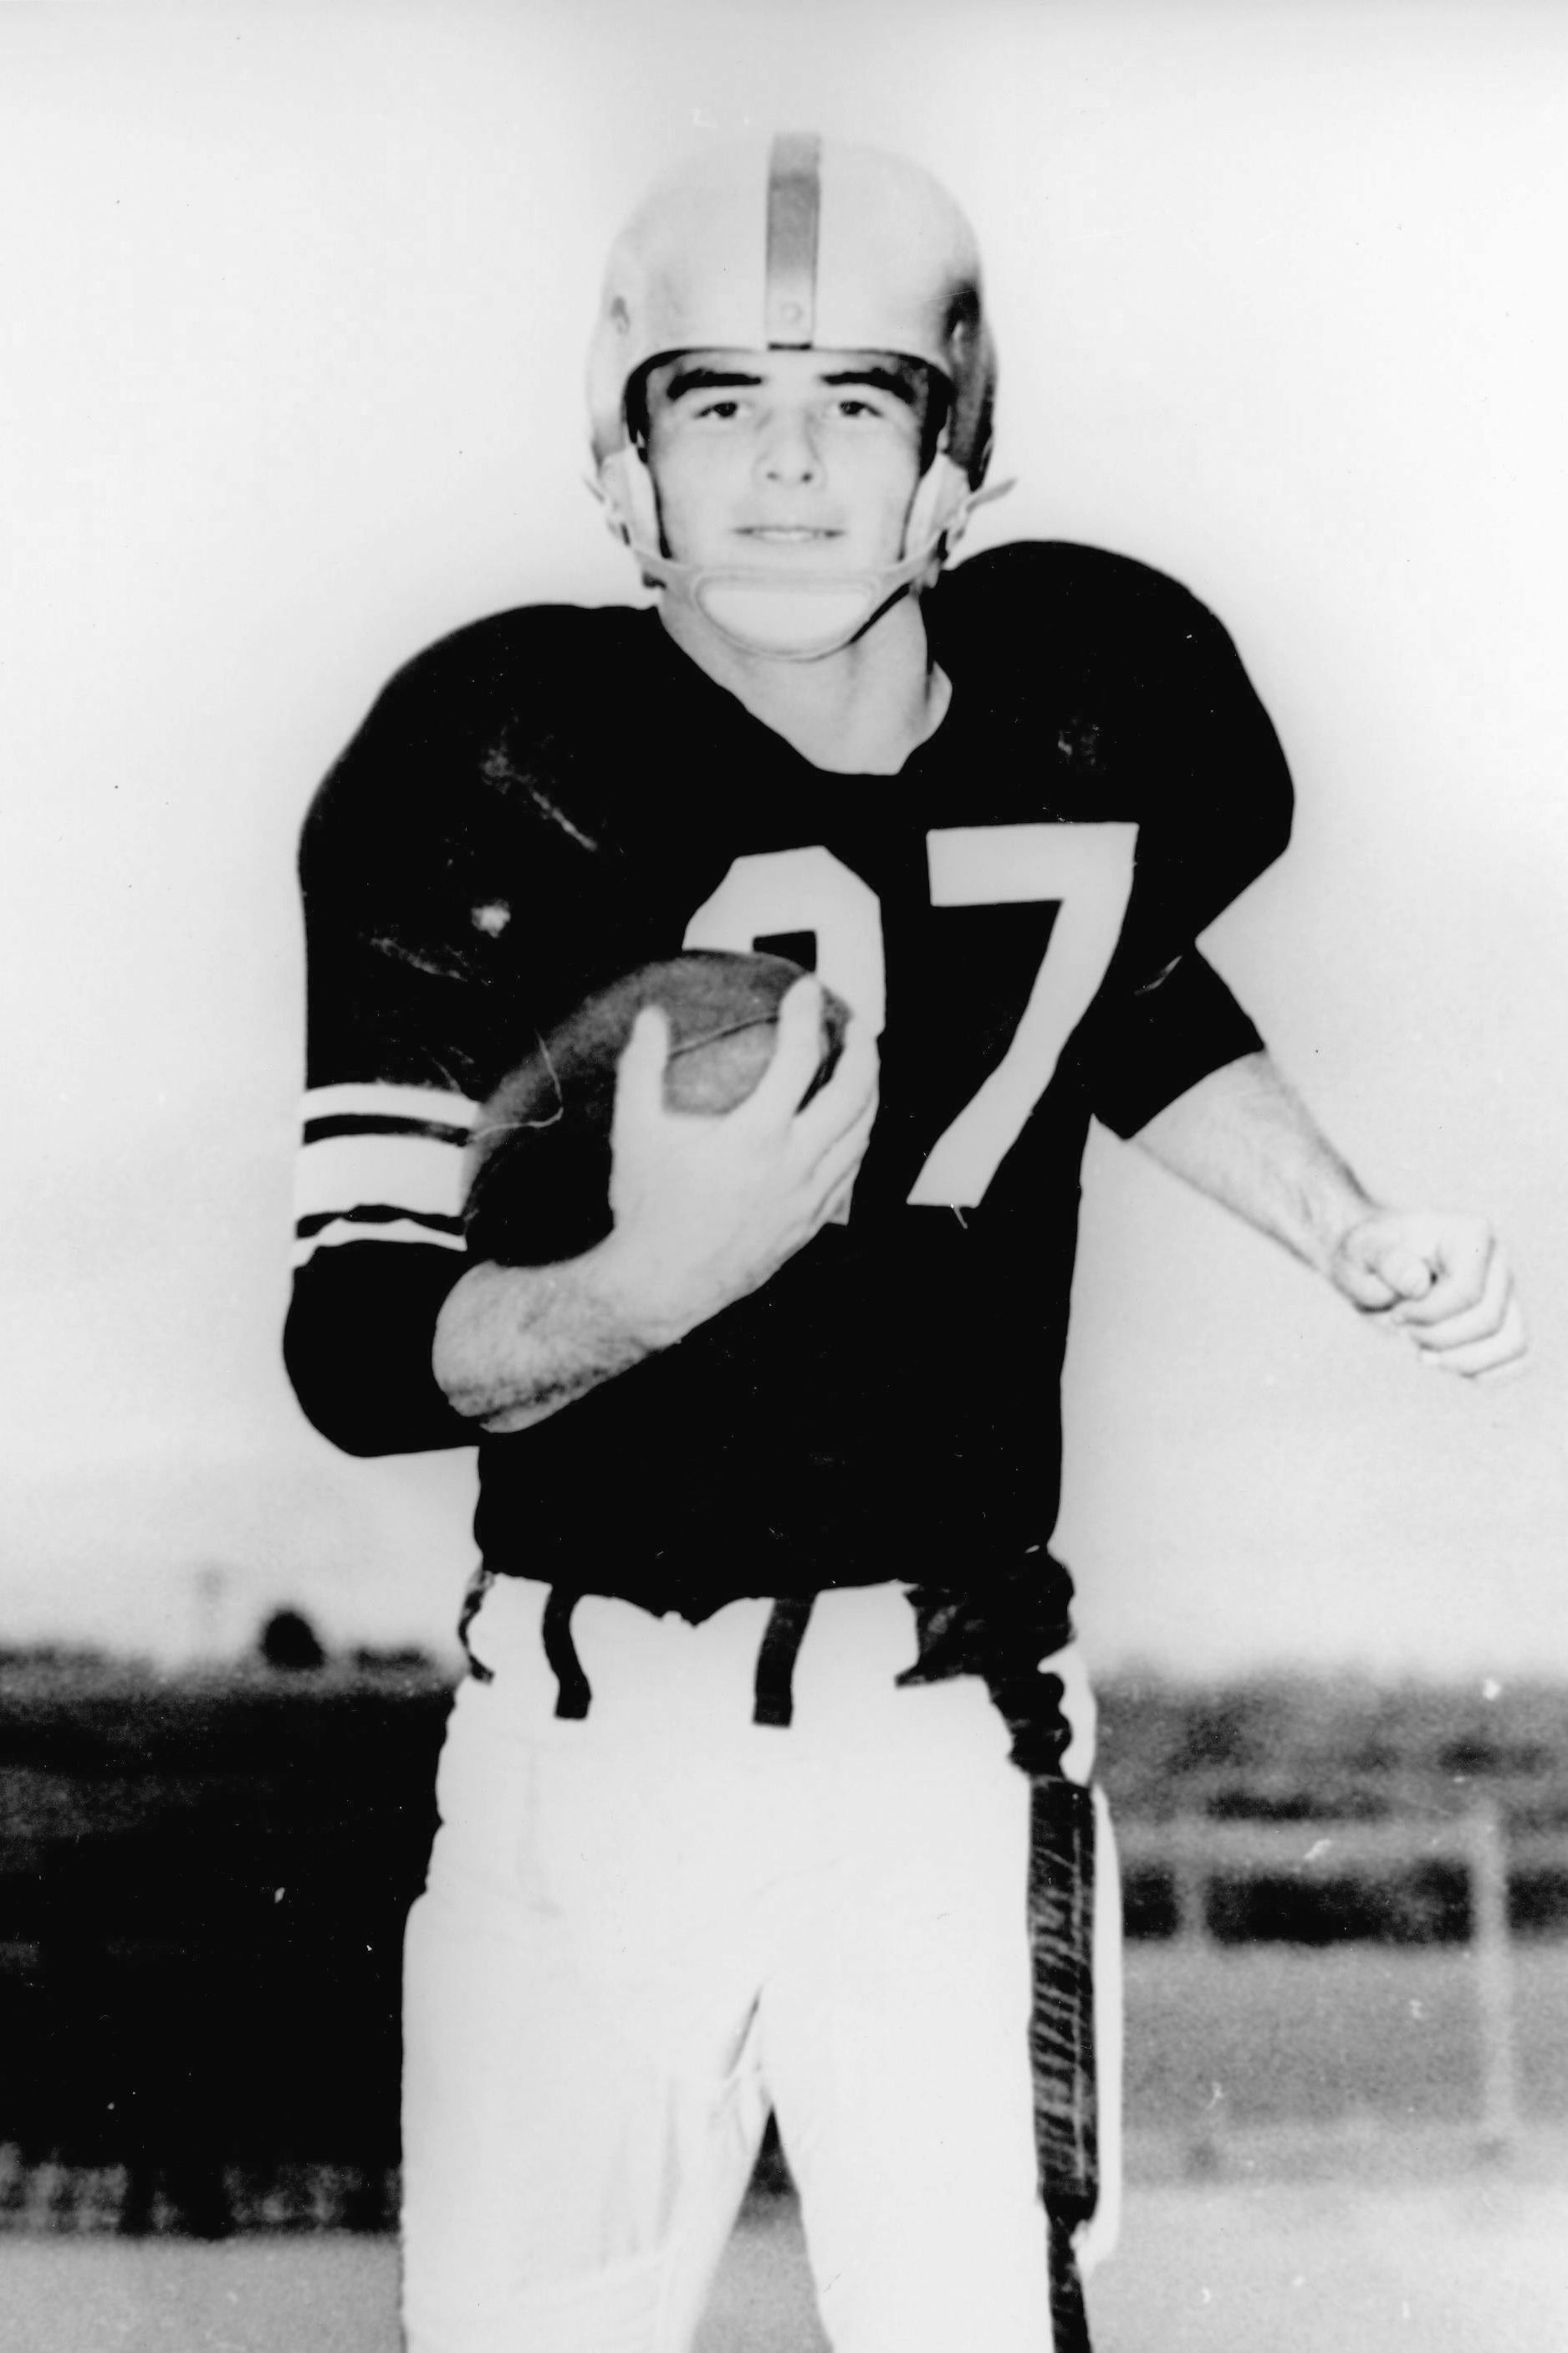 Before Hollywood Called, Burt Reynolds was a Florida State Football Star